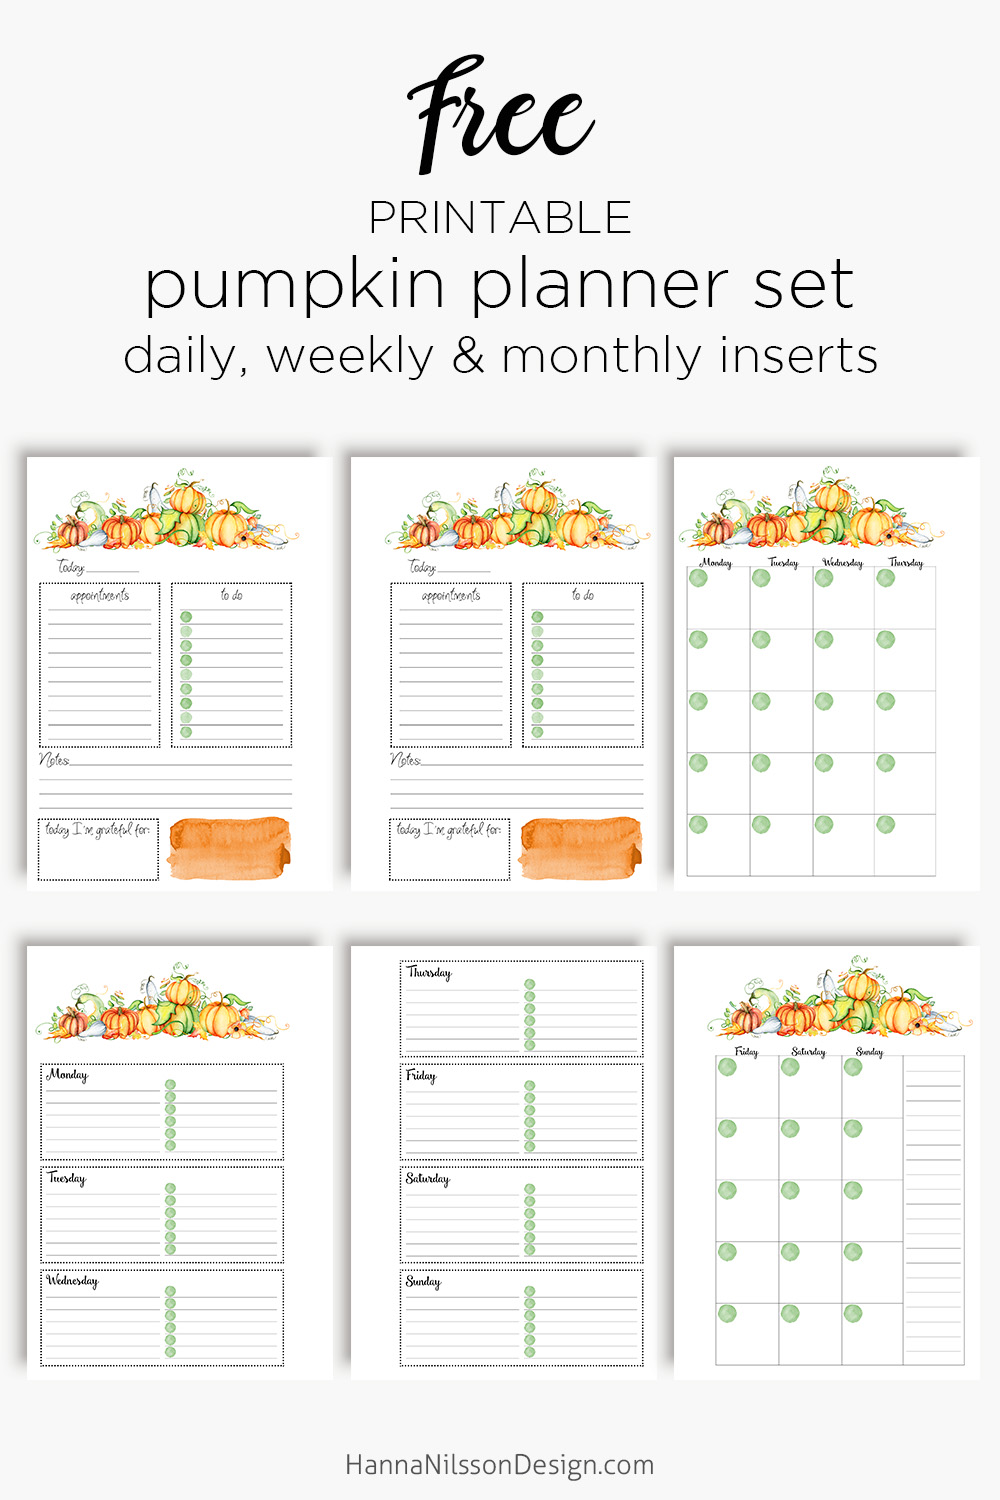 graphic about Printable Planner Inserts named No cost printable tumble planner inserts with attractive pumpkins